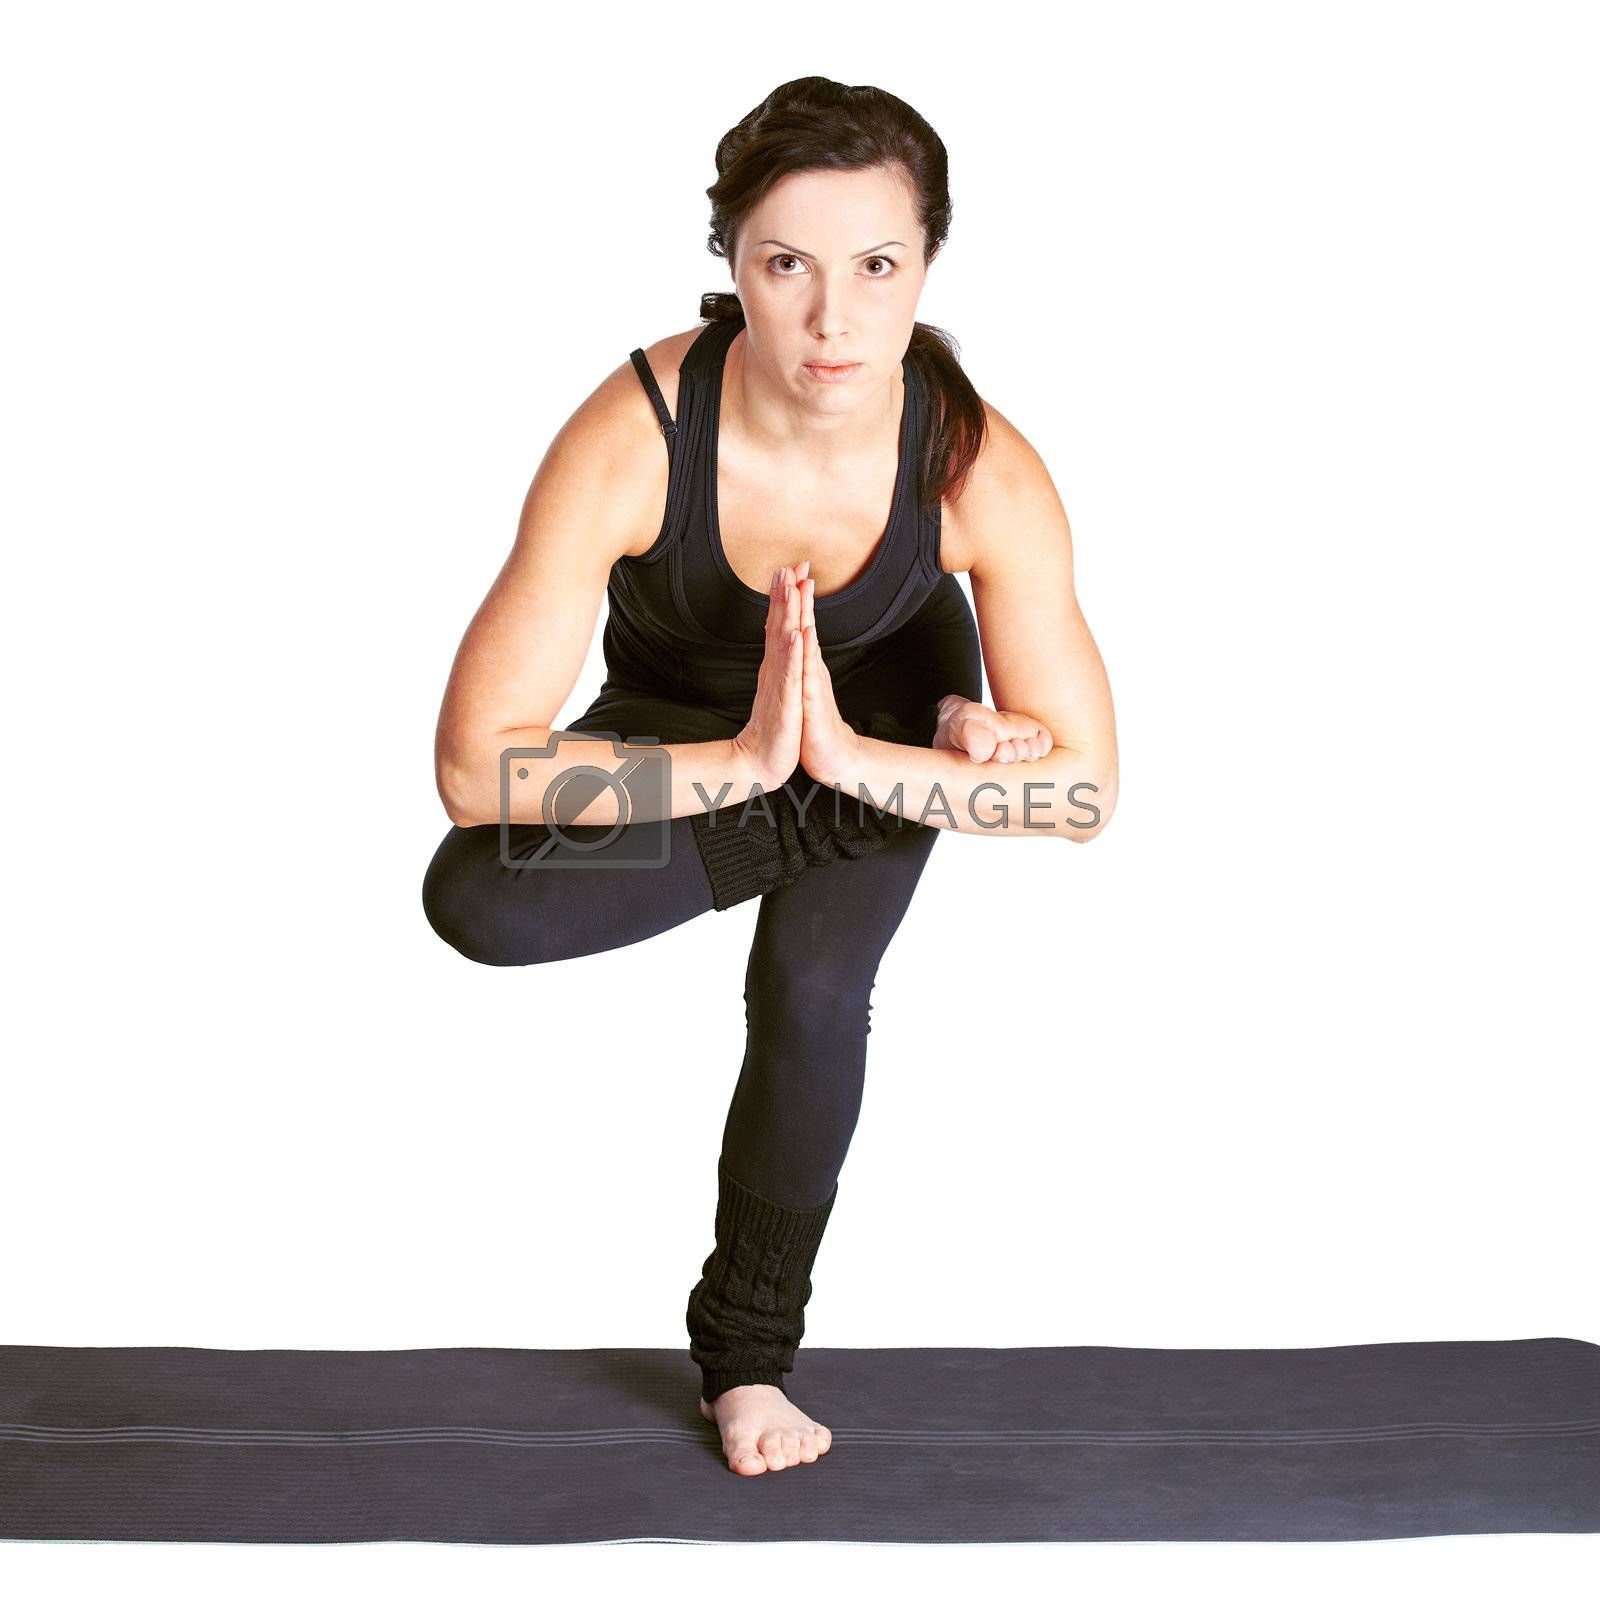 full-length portrait of beautiful woman working out yoga exercise. balancing on one leg on fitness mat